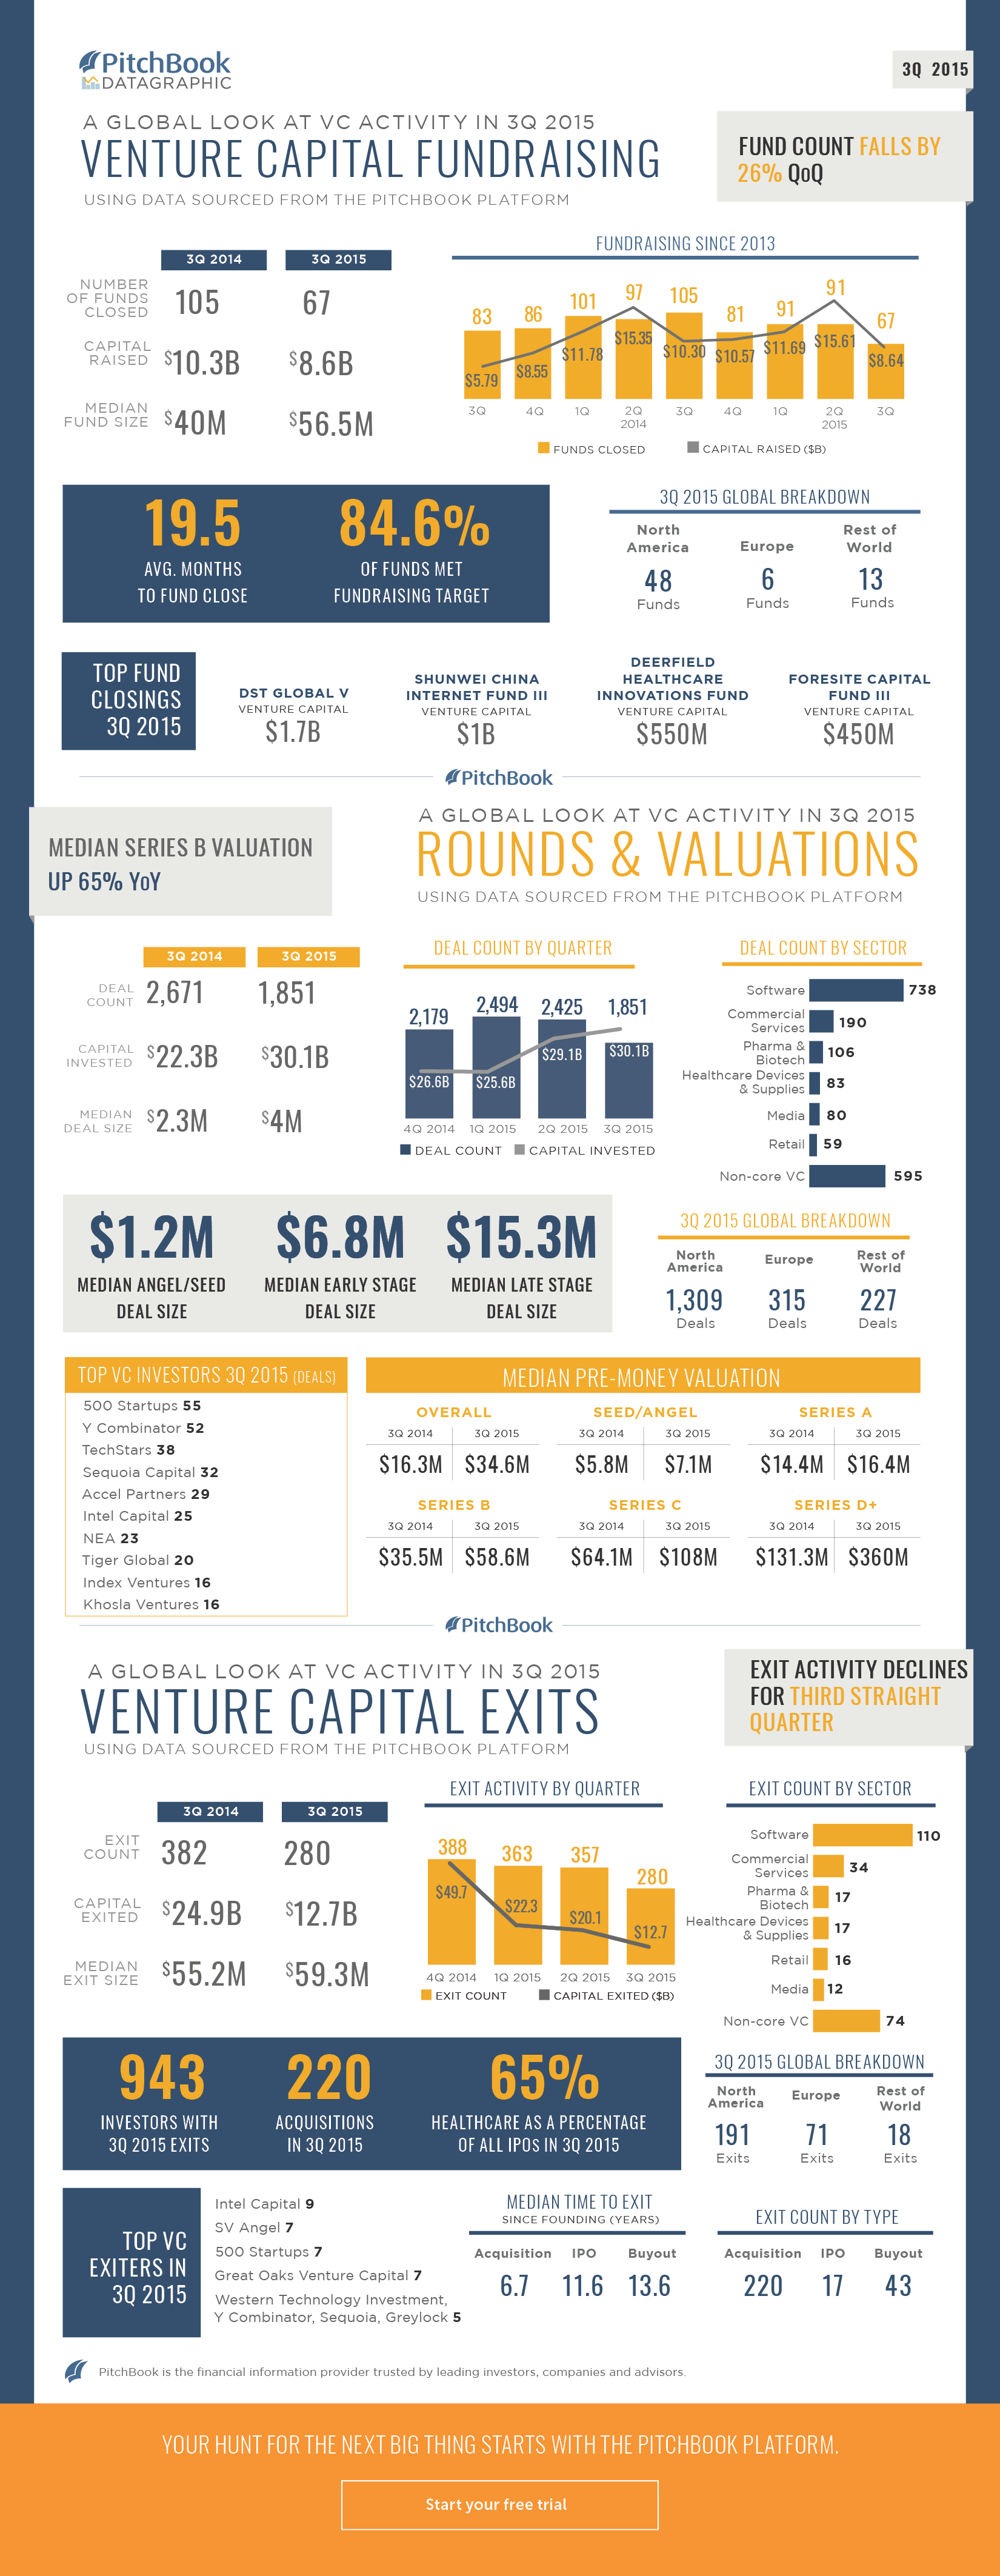 3Q 2015 EOQ Datagraphic - VC